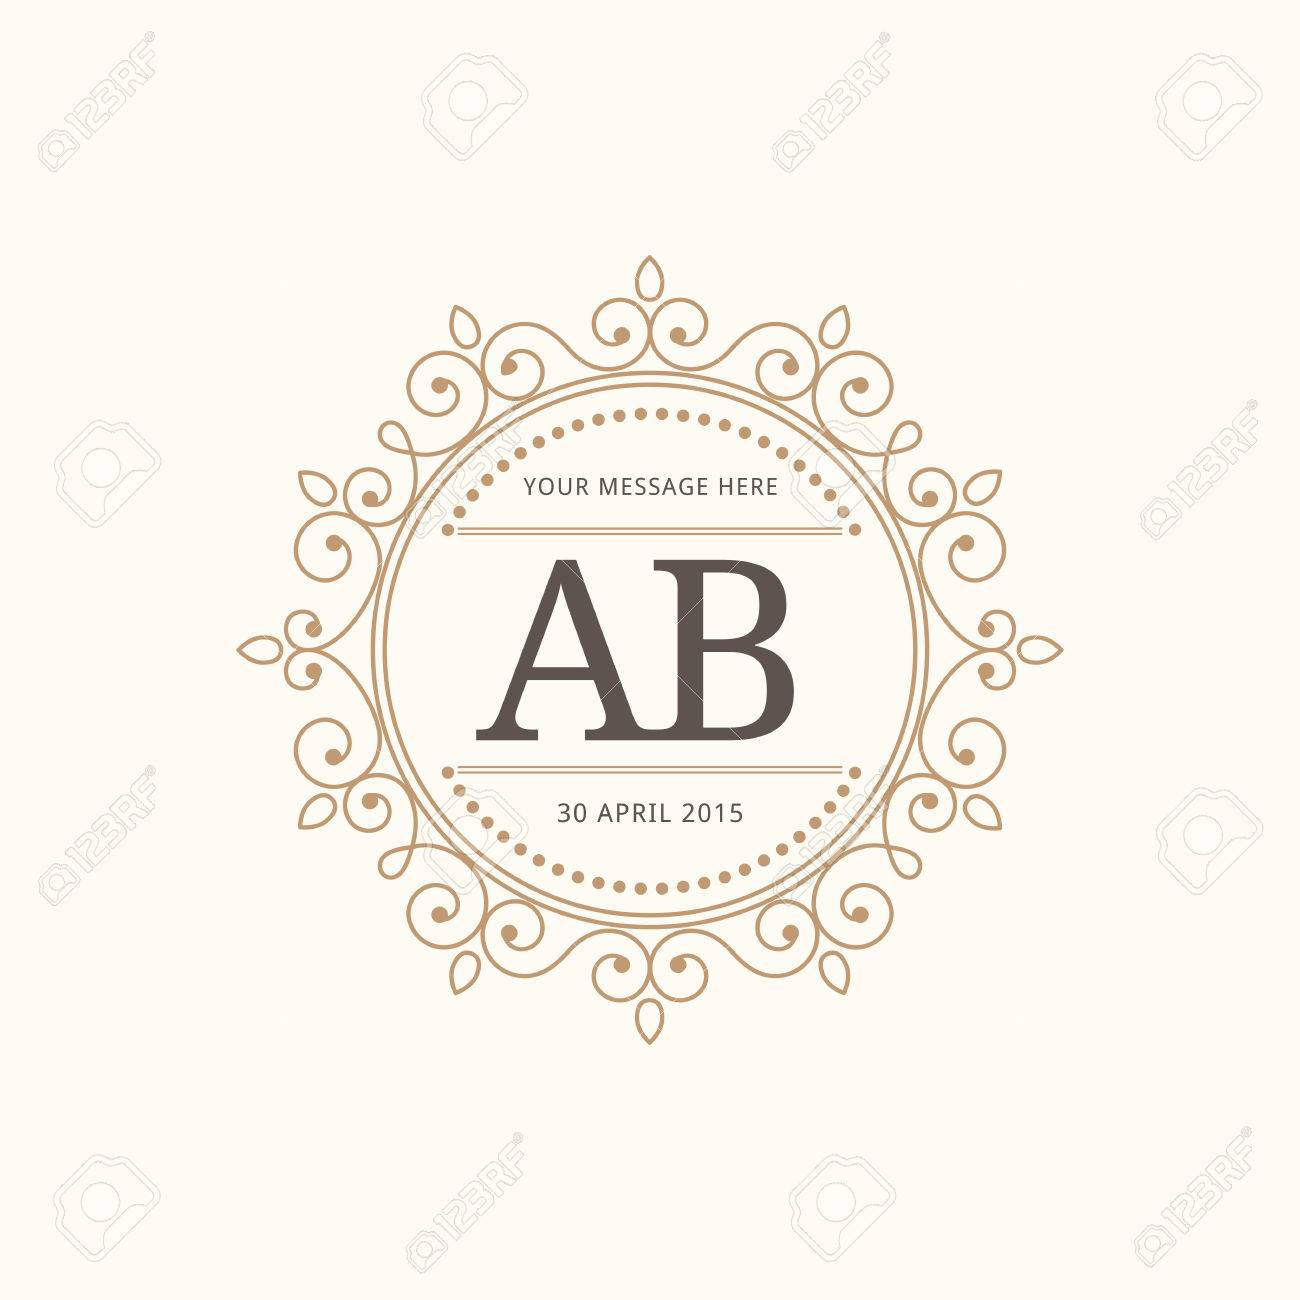 Elegant Vintage Monogram Design Template For One Or Two Letters